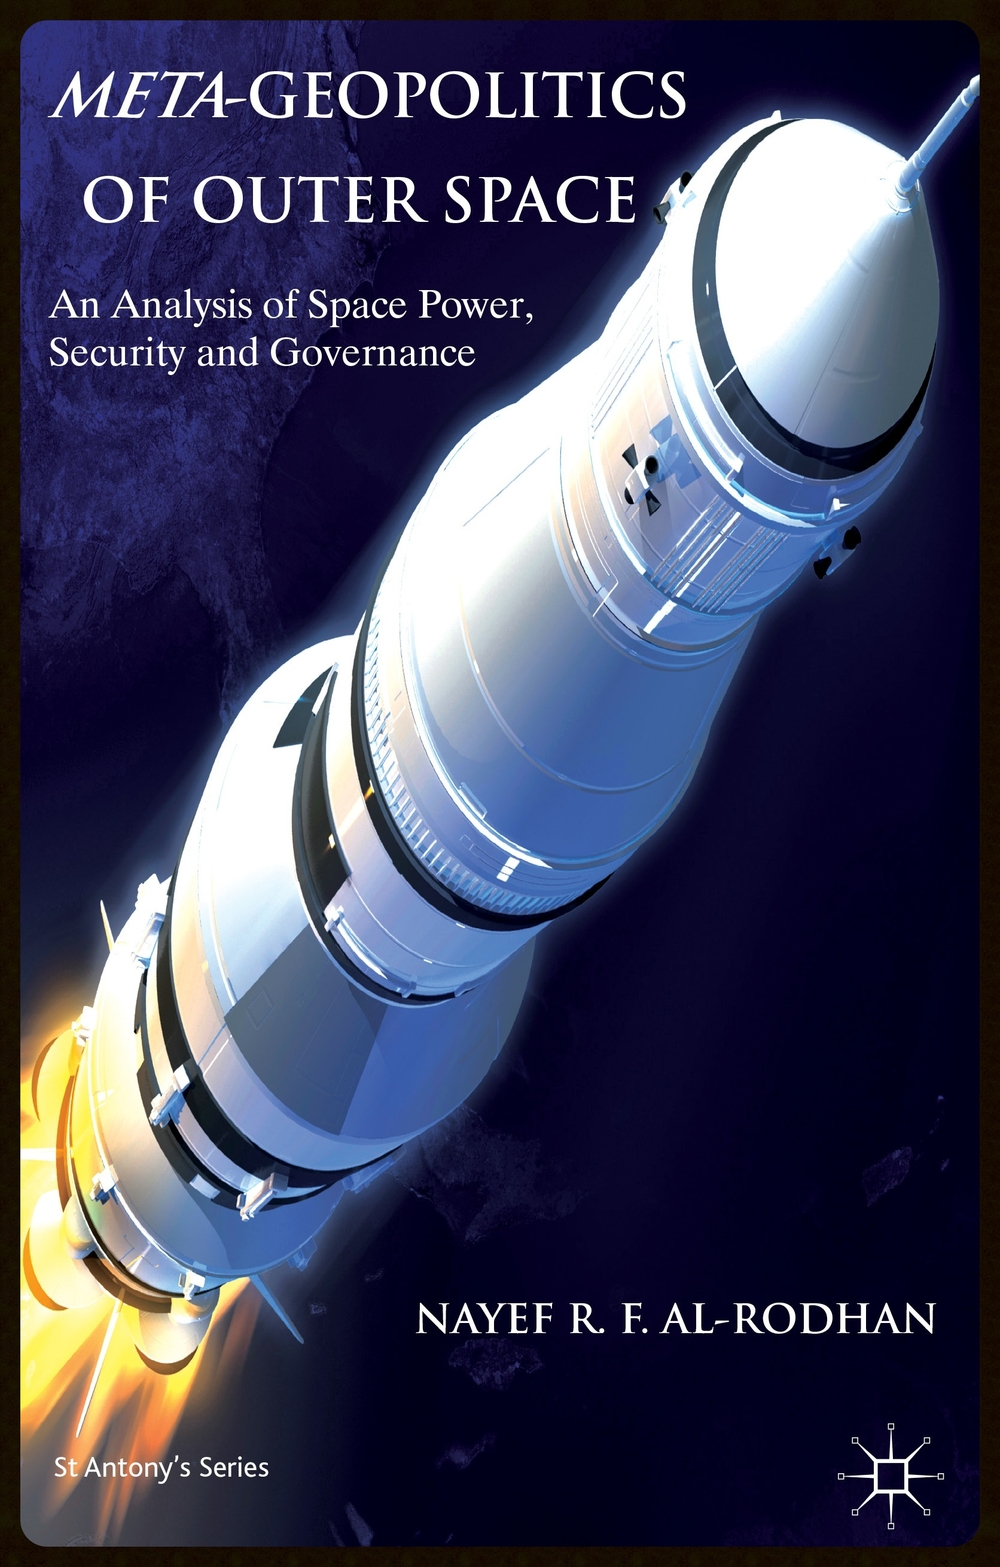 META-GEOPOLITICS OF OUTER SPACE: An Analysis of Space Power, Security and Governance      One of the most distinctive features of Meta-geopolitics is its all-encompassing analysis of space power, security and geopolitical actors.   Read more.